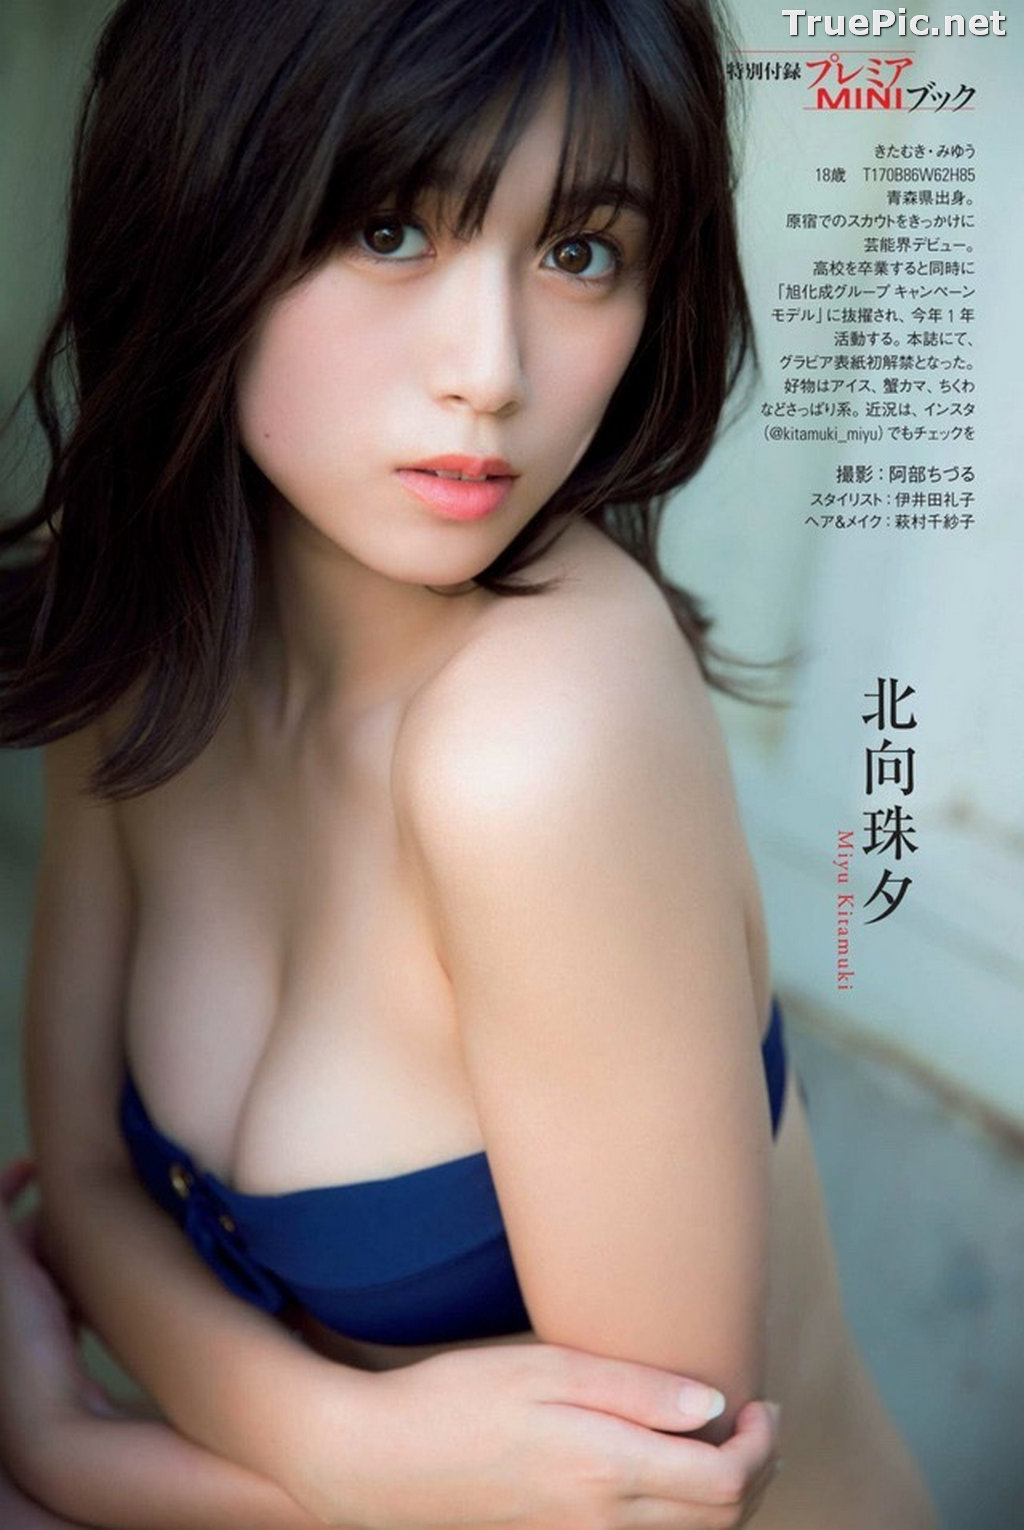 ImageJapanese Gravure Idol and Actress - Kitamuki Miyu (北向珠夕) - Sexy Picture Collection 2020 - TruePic.net - Picture-8